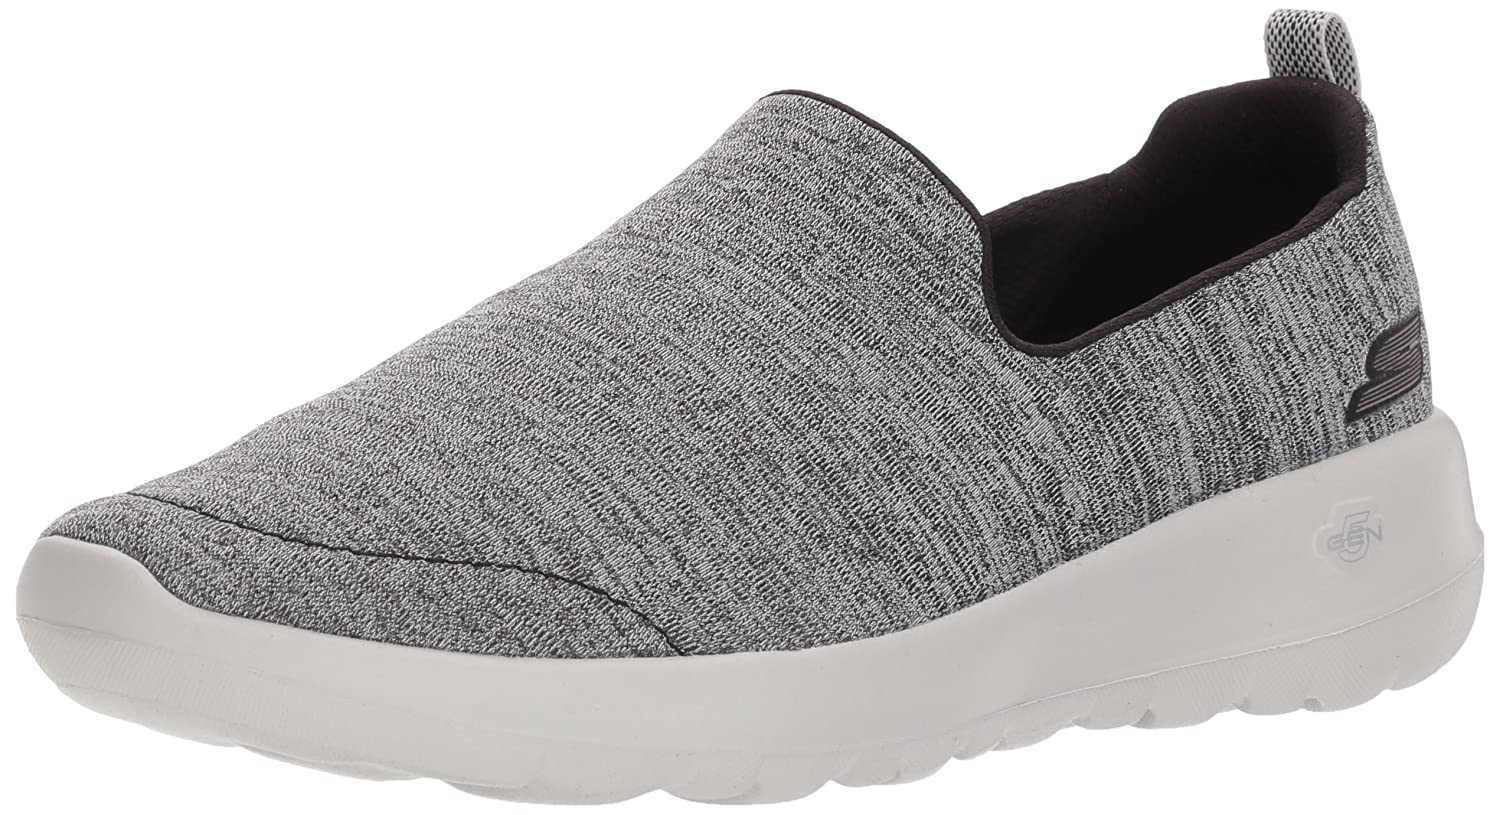 Skechers Women's Go Walk B(M) Joy-15611 Sneaker B07537HQPT 9.5 B(M) Walk US|Black/Gray dbab3f